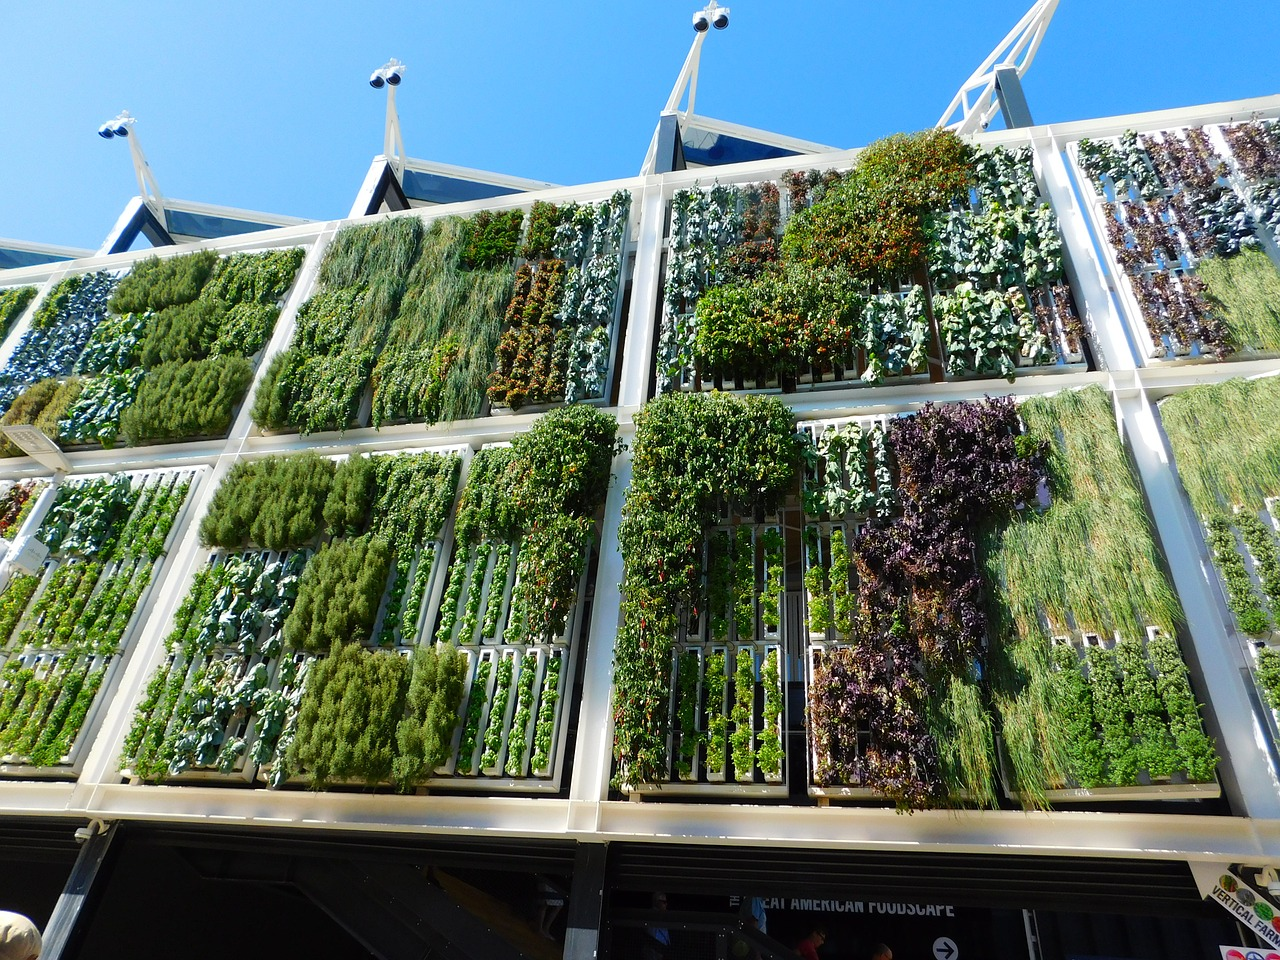 vertical garden exhibition